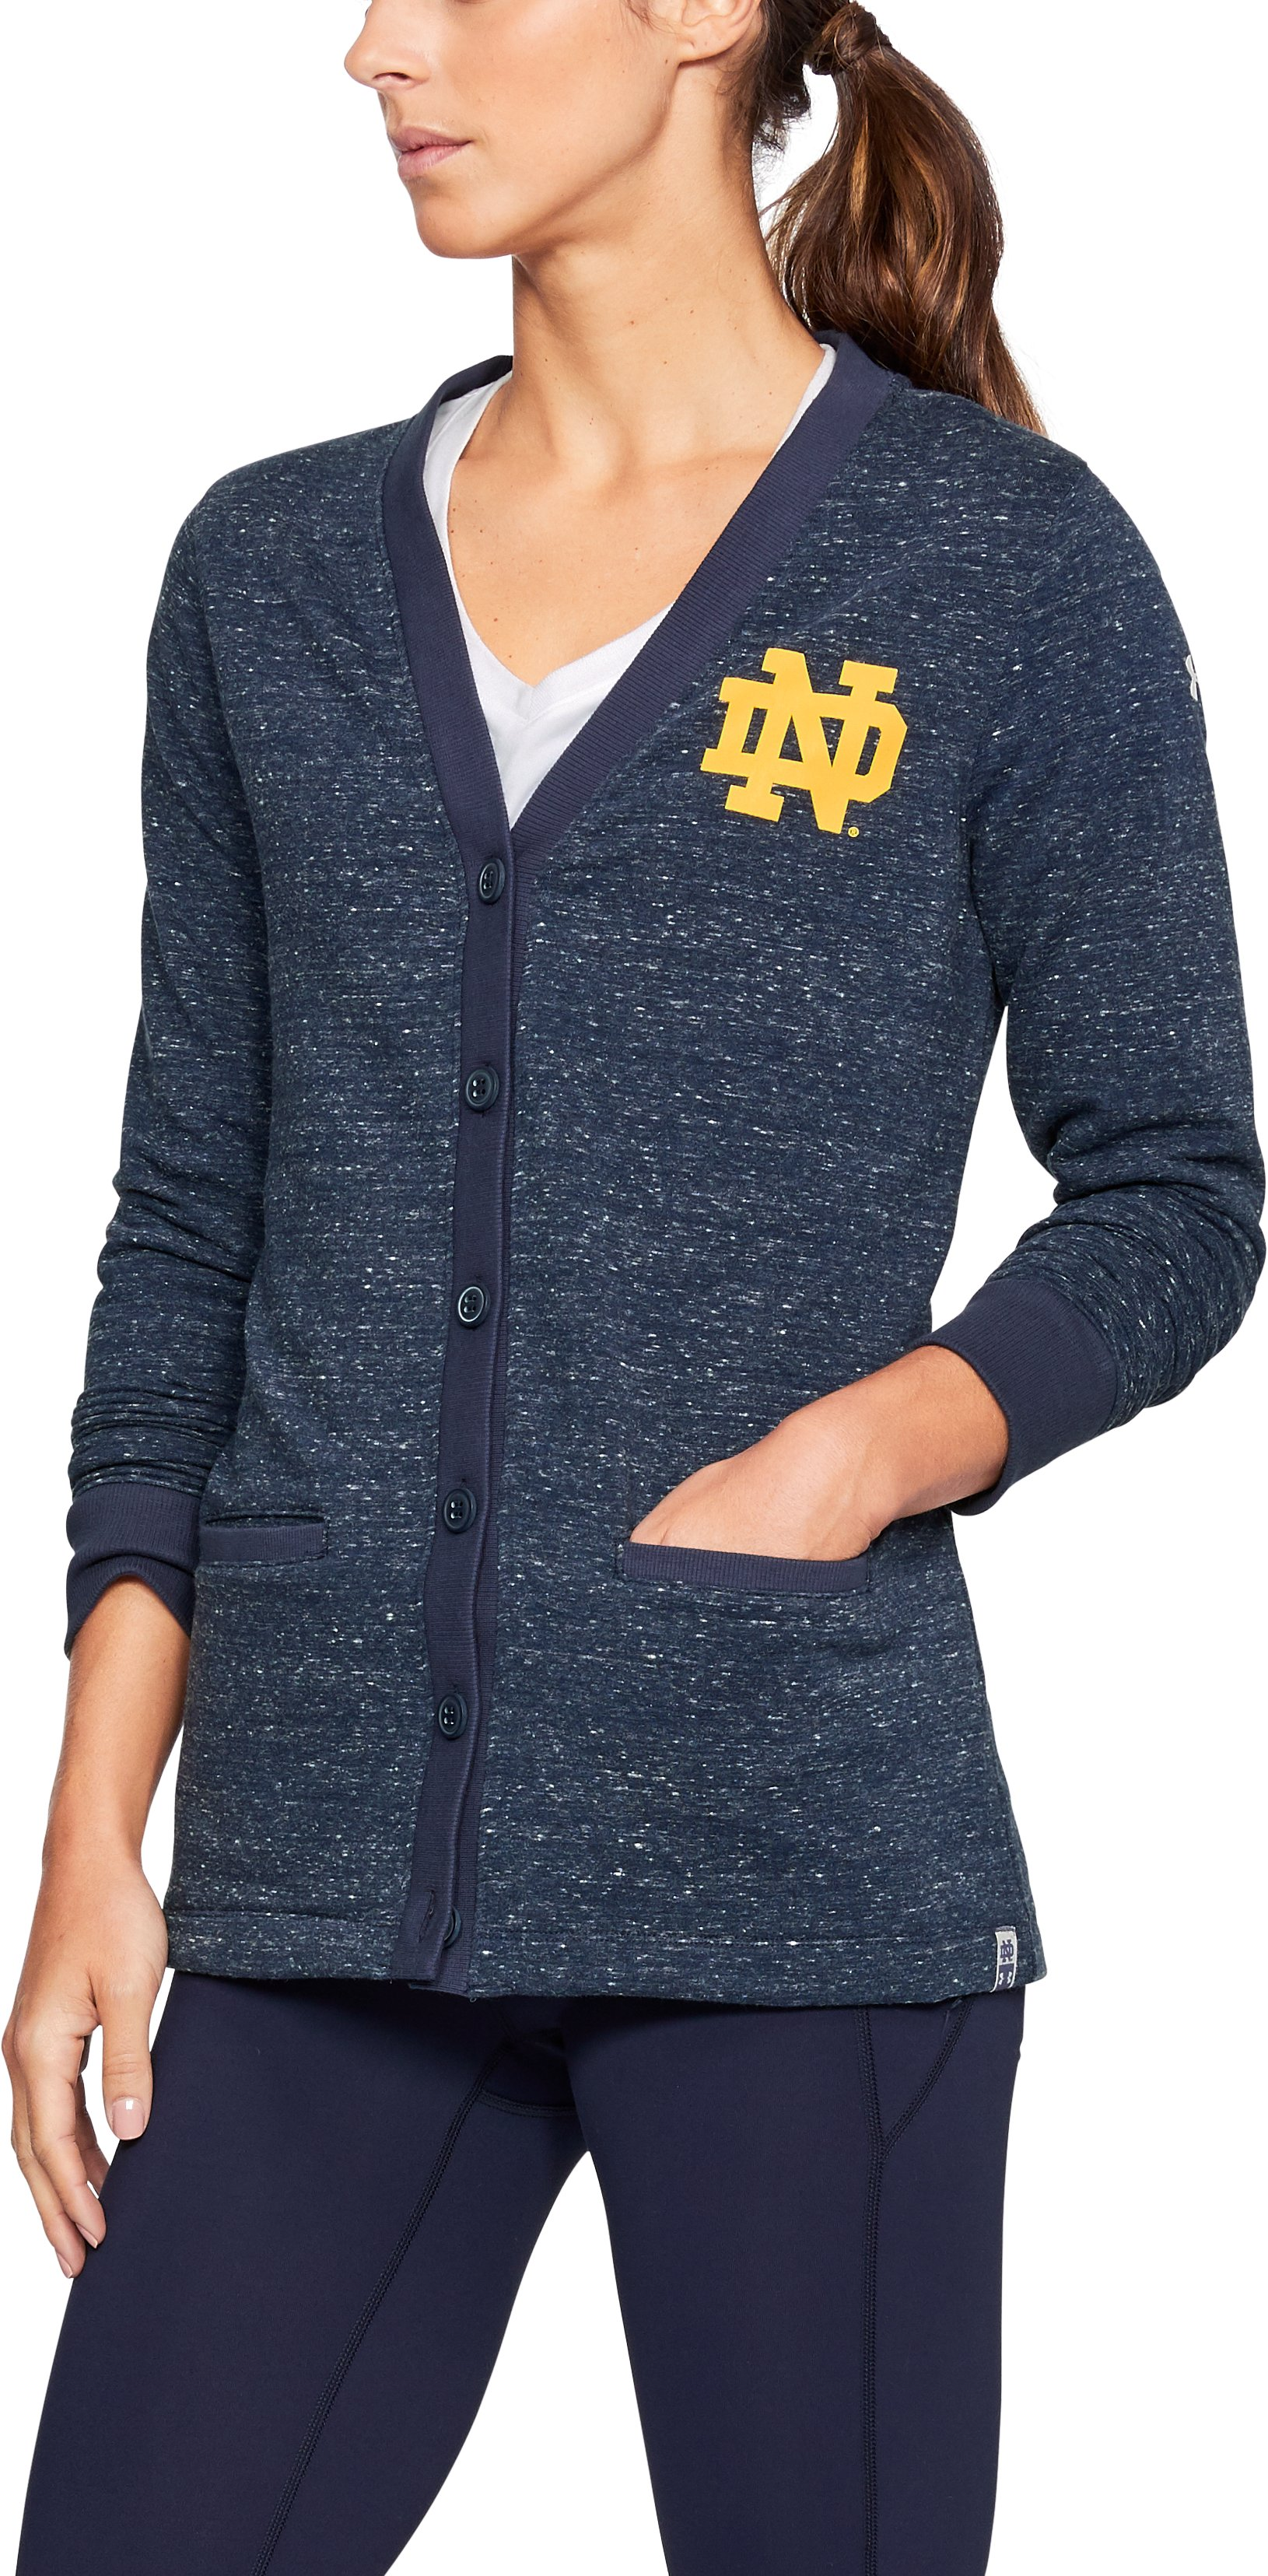 iconic hoodies Women's Notre Dame UA Iconic Cardigan